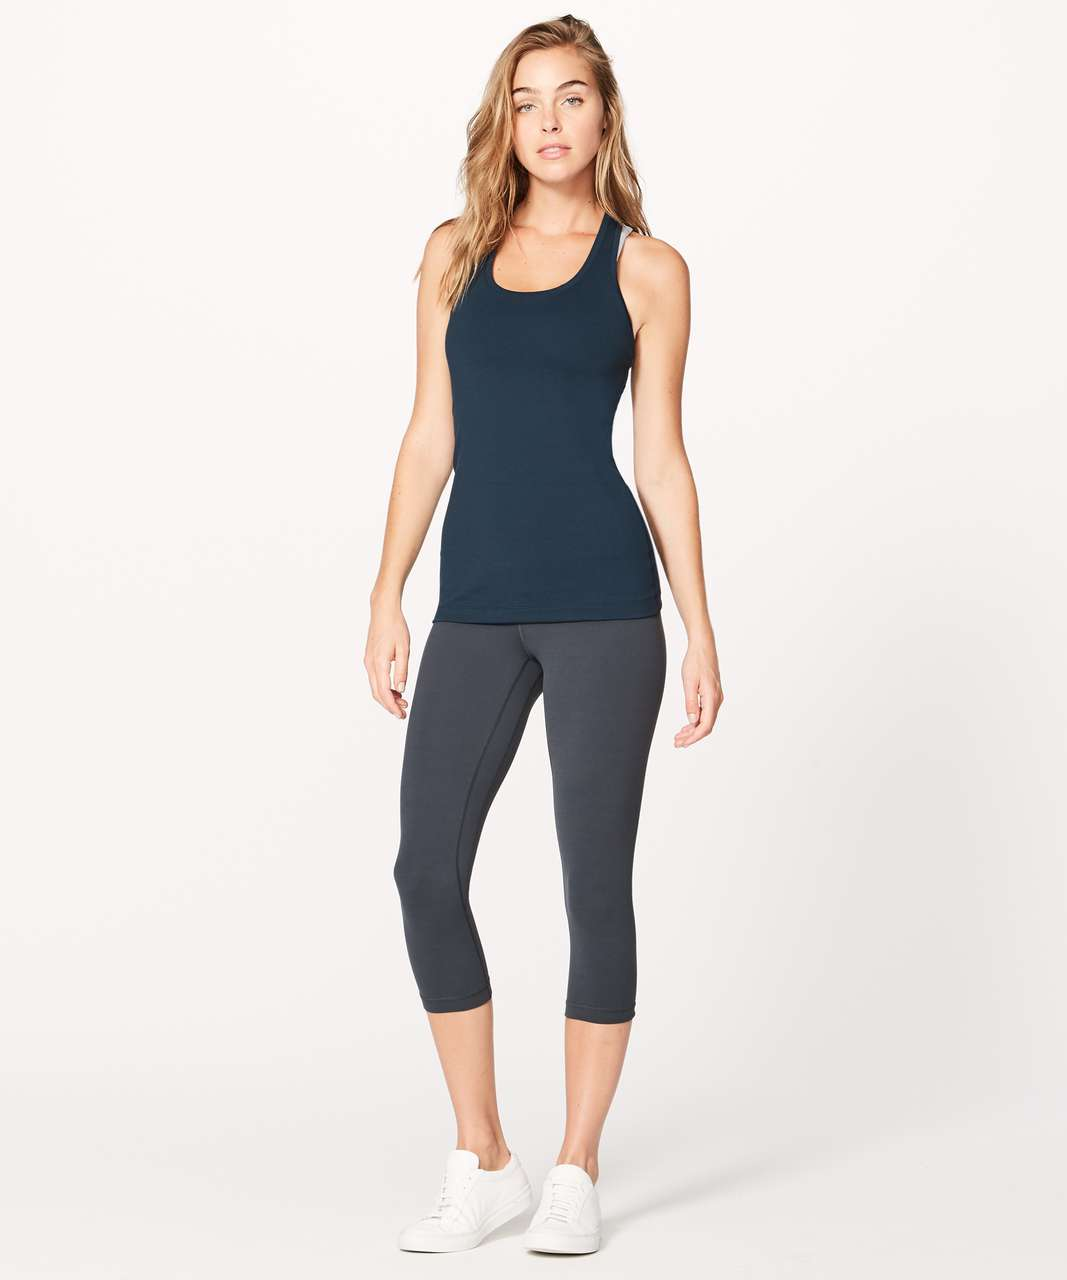 Lululemon Cool Racerback II - Jaded